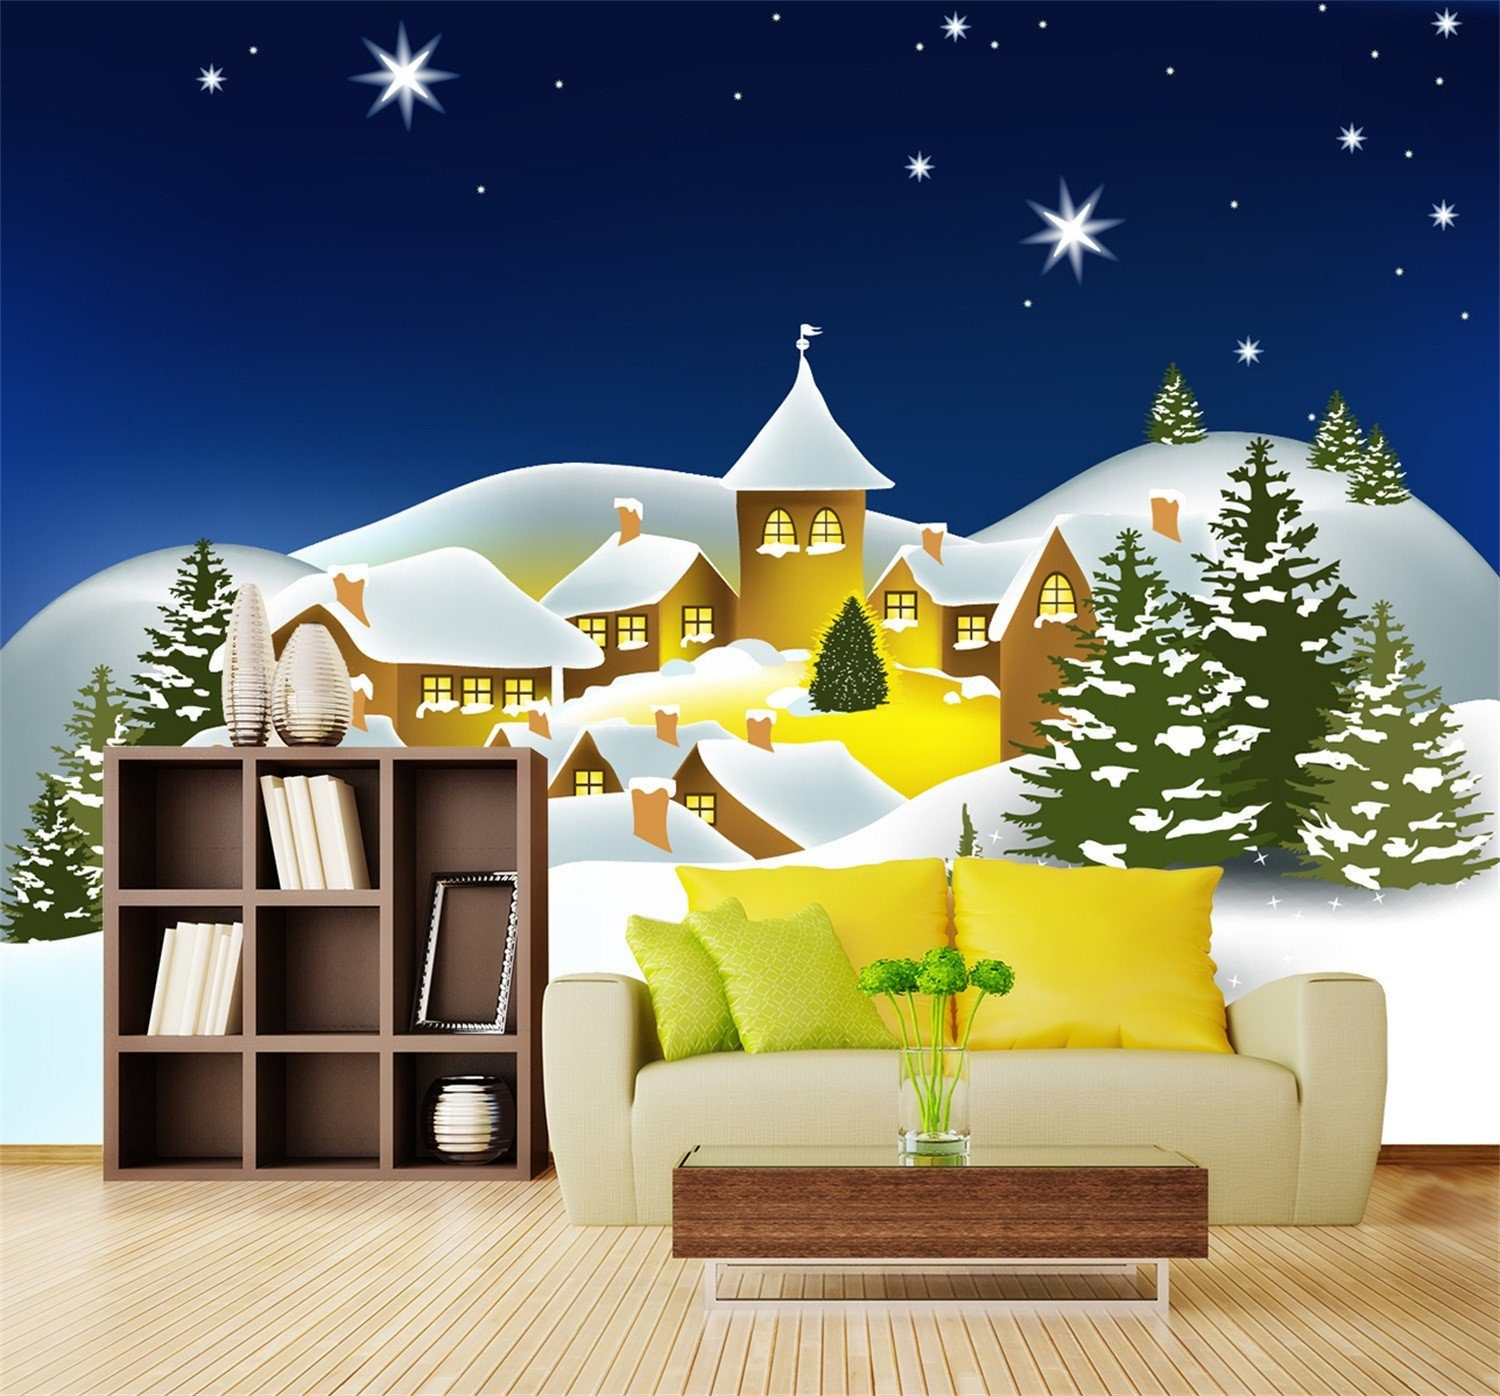 3D Merry Christmas Eve 662 Wallpaper AJ Wallpaper